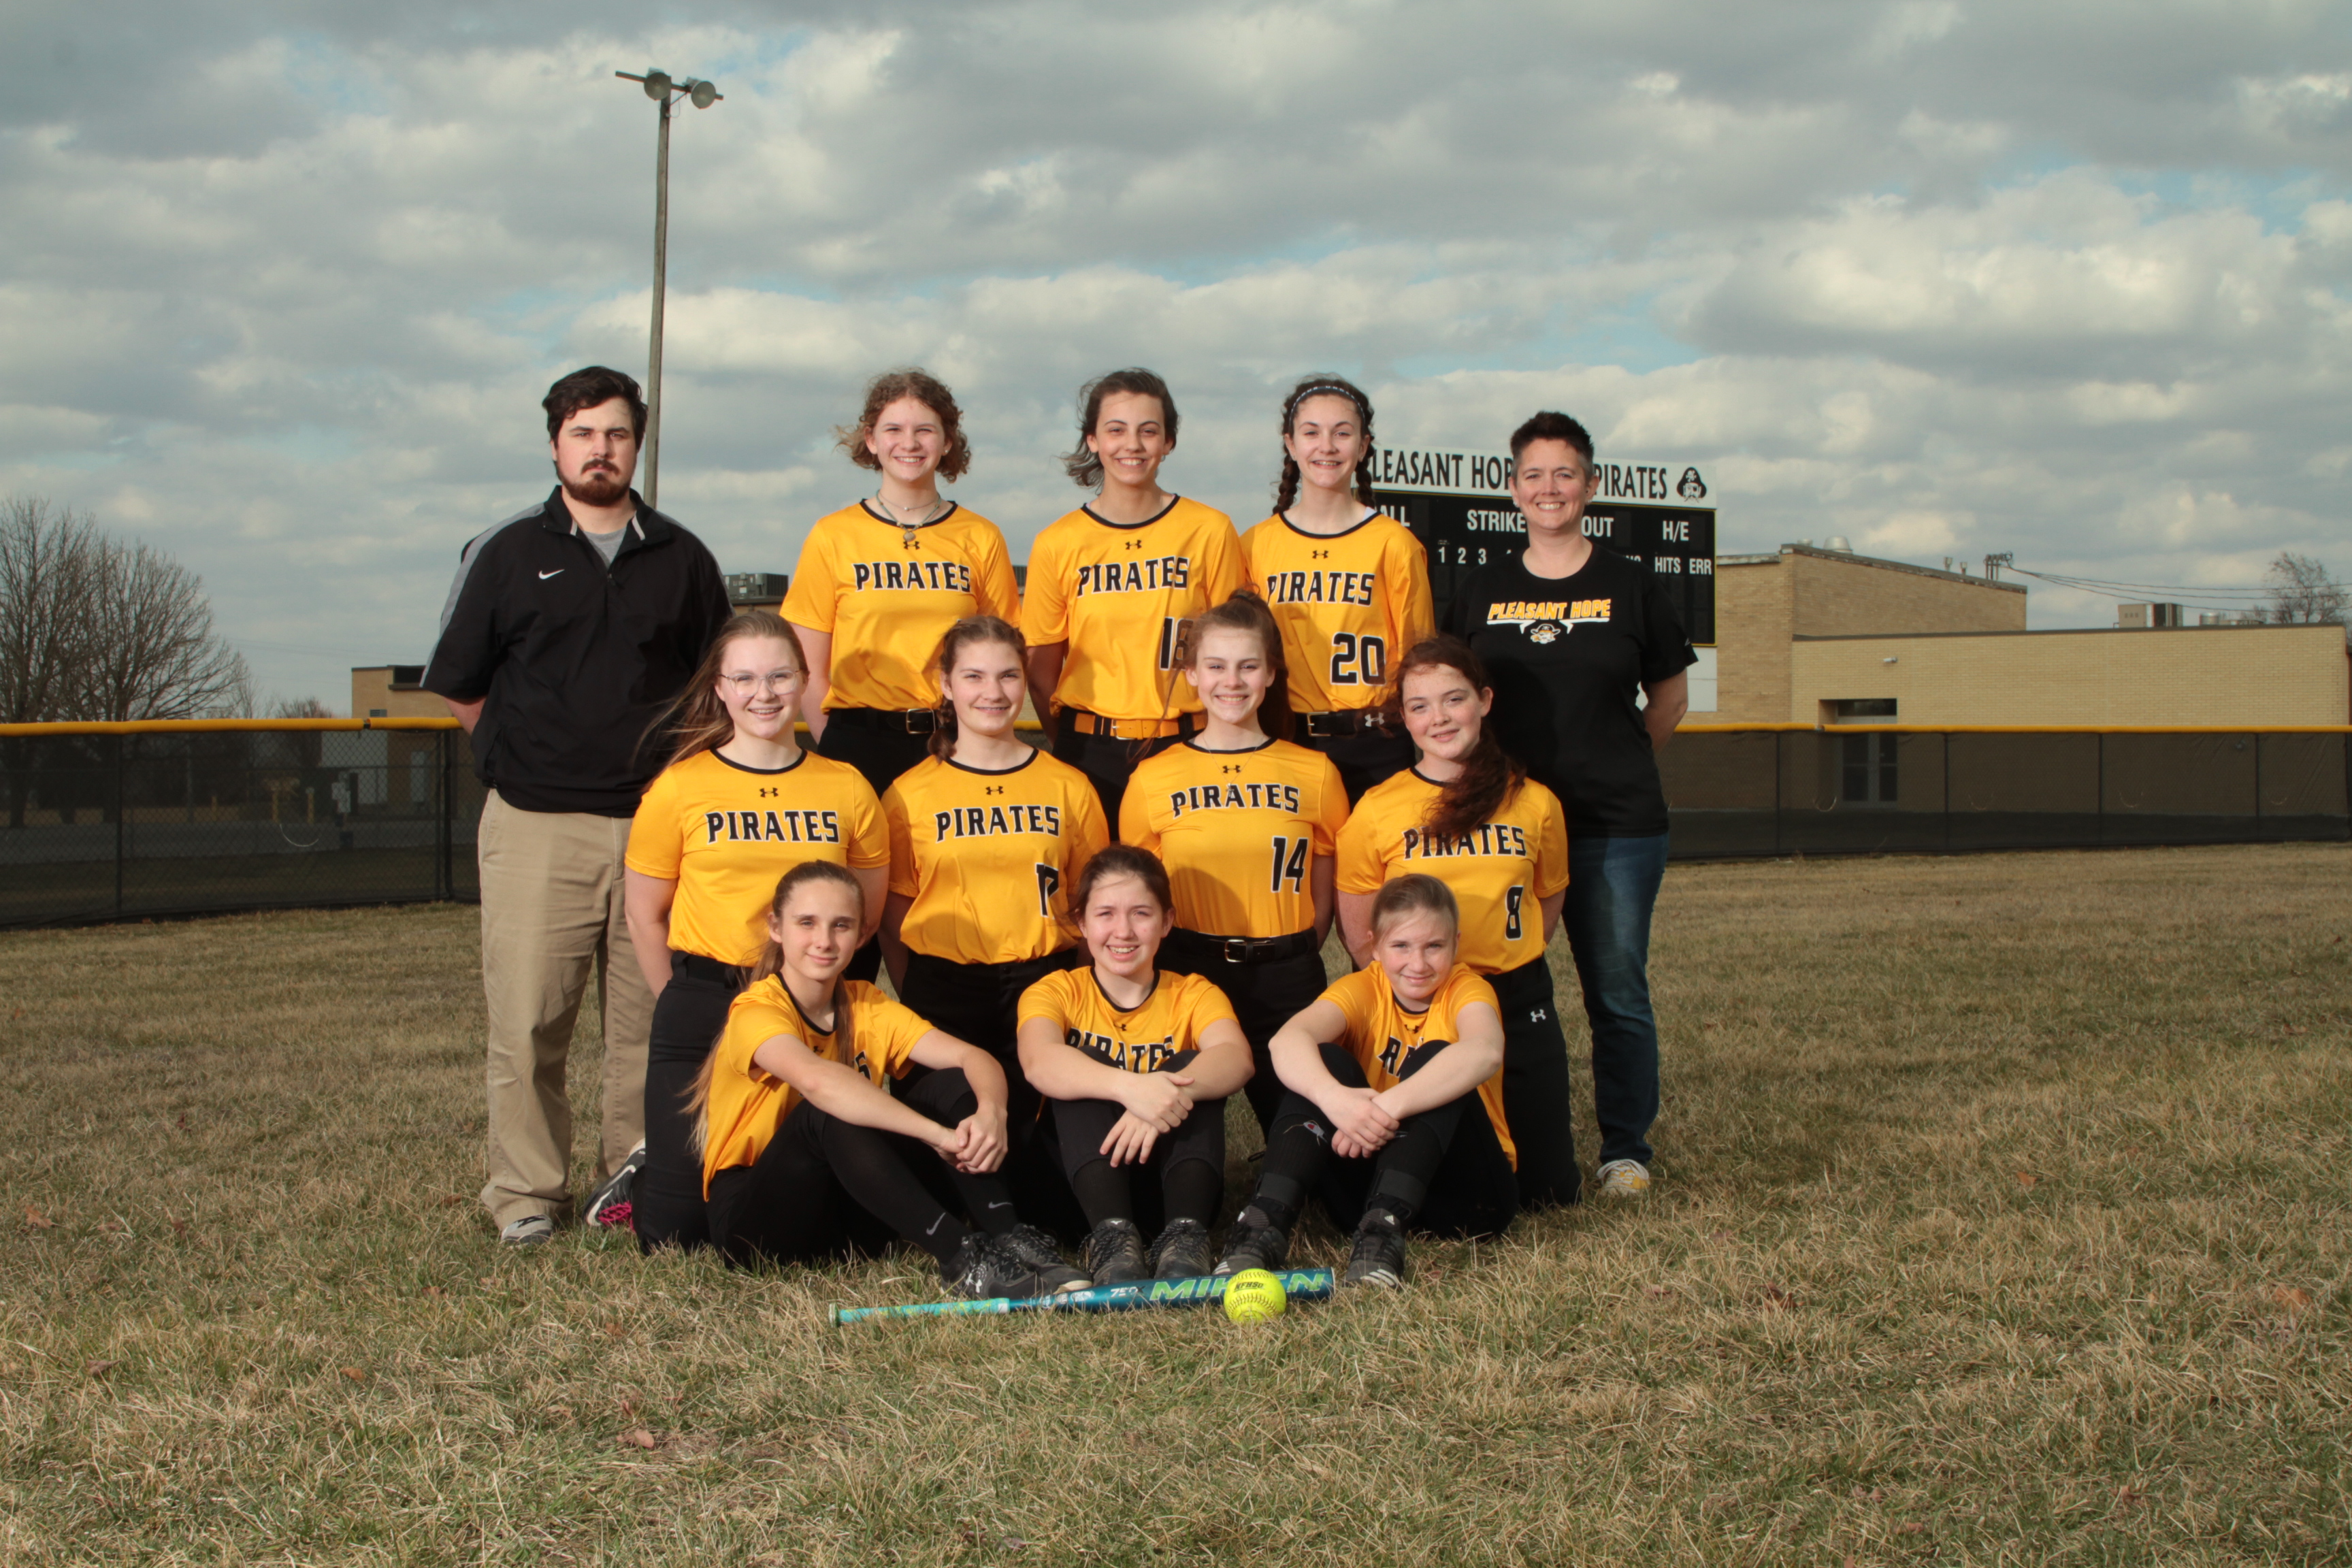 MS Softball Team Picture